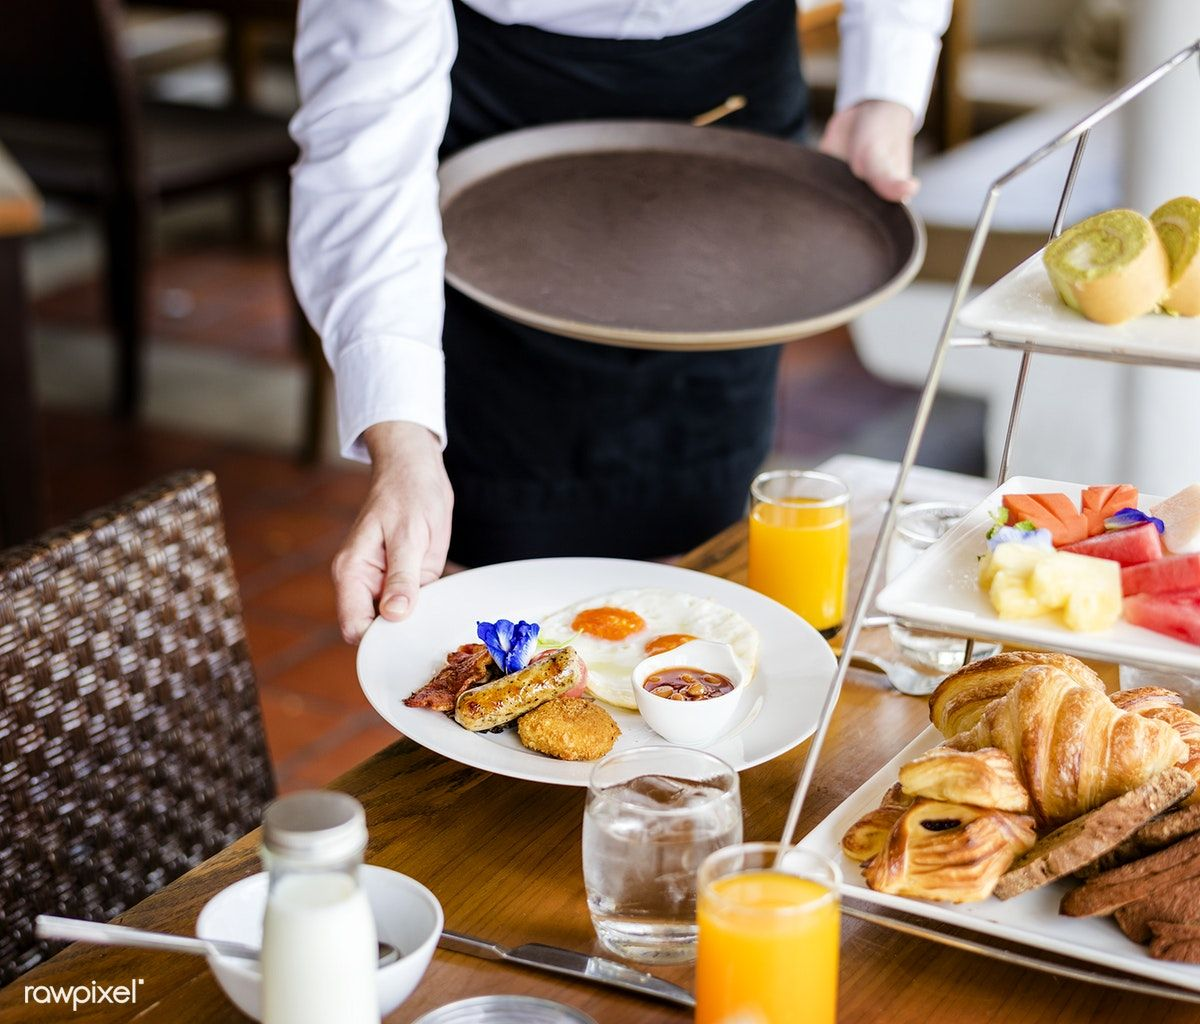 Waitress Serving Breakfast At A Restaurant Premium Image By Rawpixel